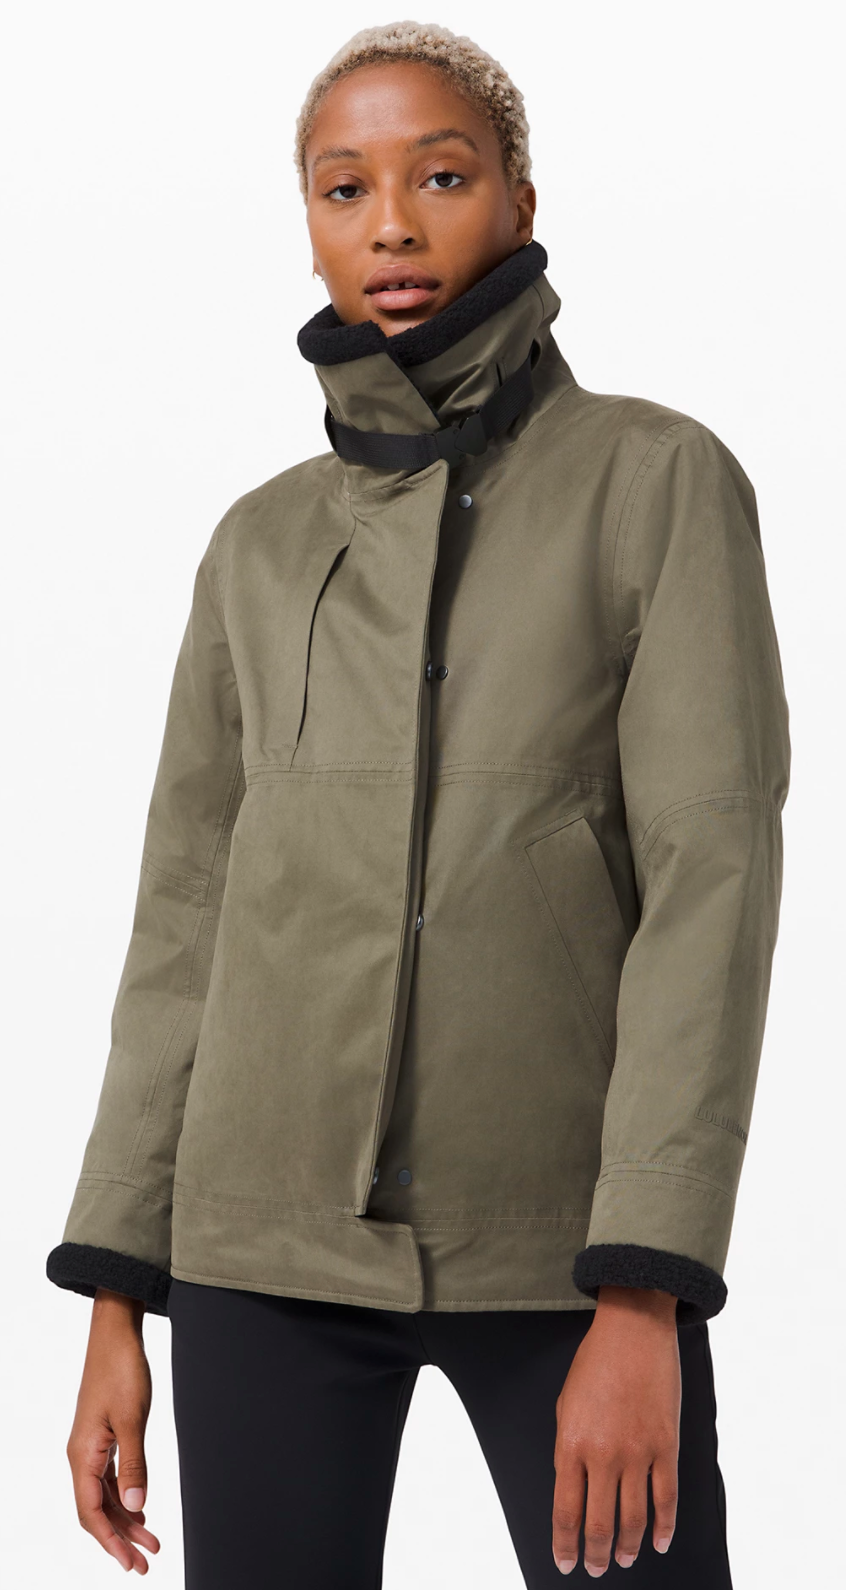 Resolute Warmth Jacket in Fatigue Green/Black (Photo via Lululemon Athletica)